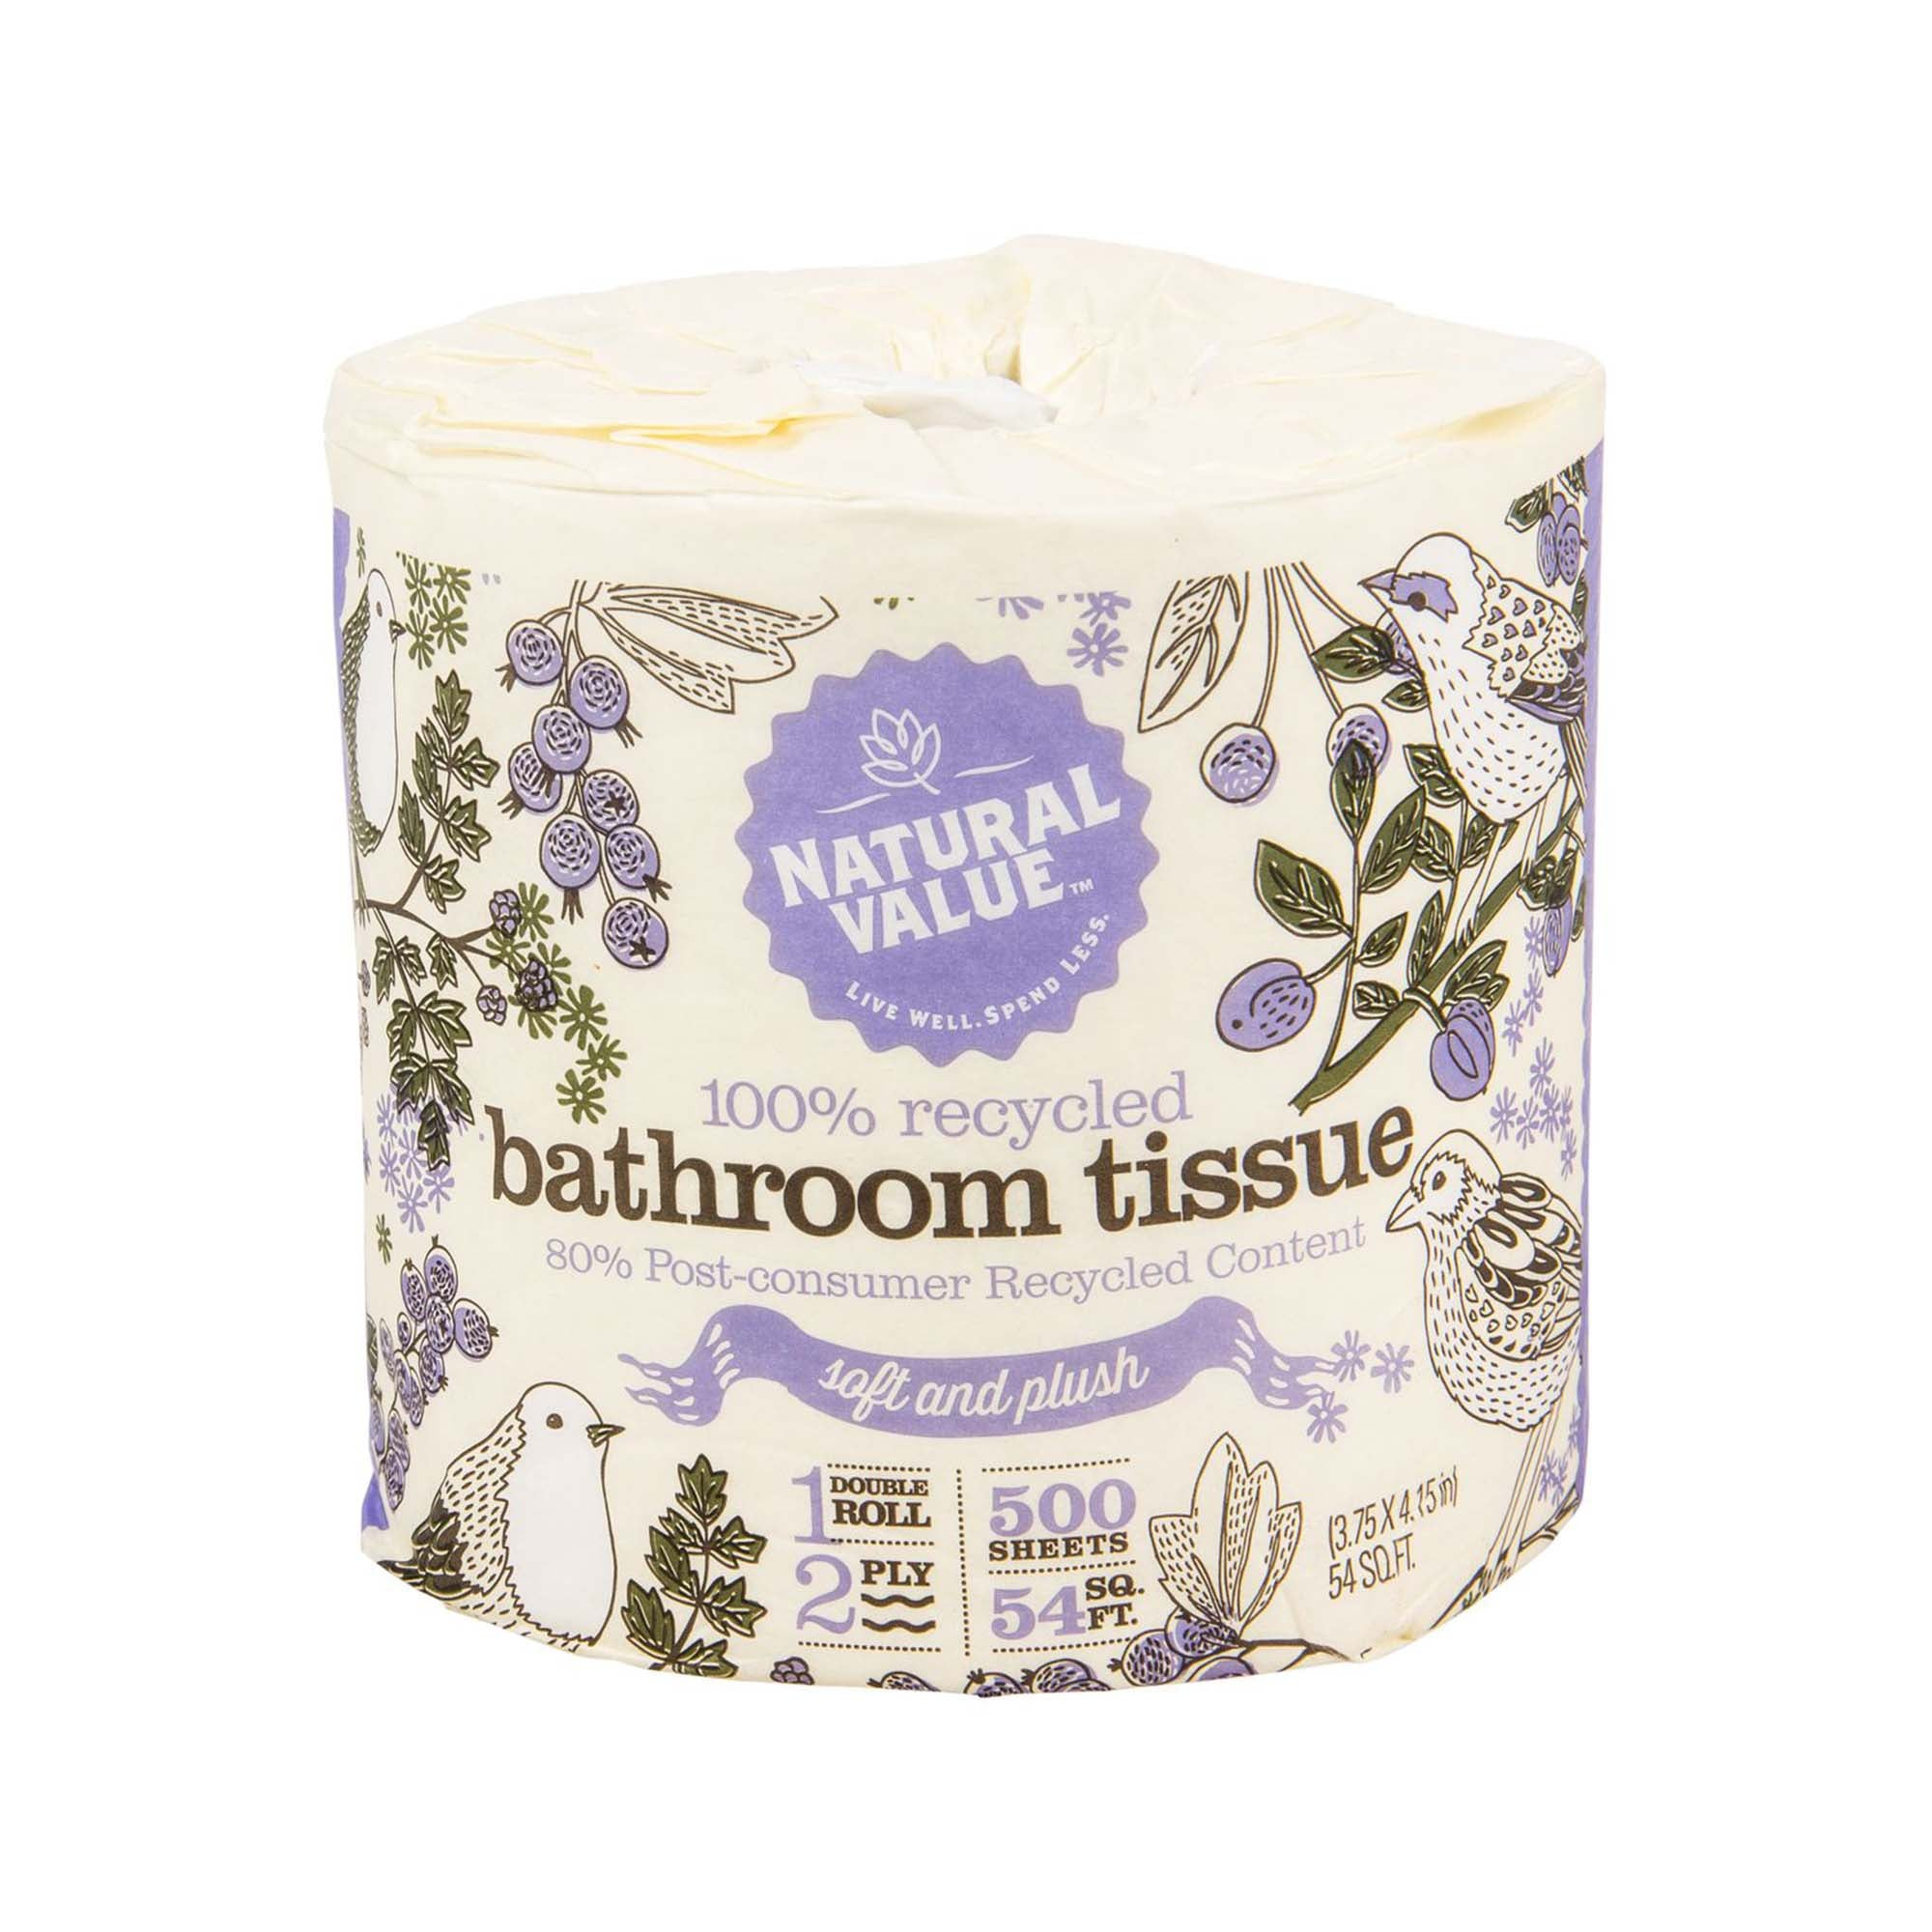 100% Recycled Bathroom Tissue — Natural Value